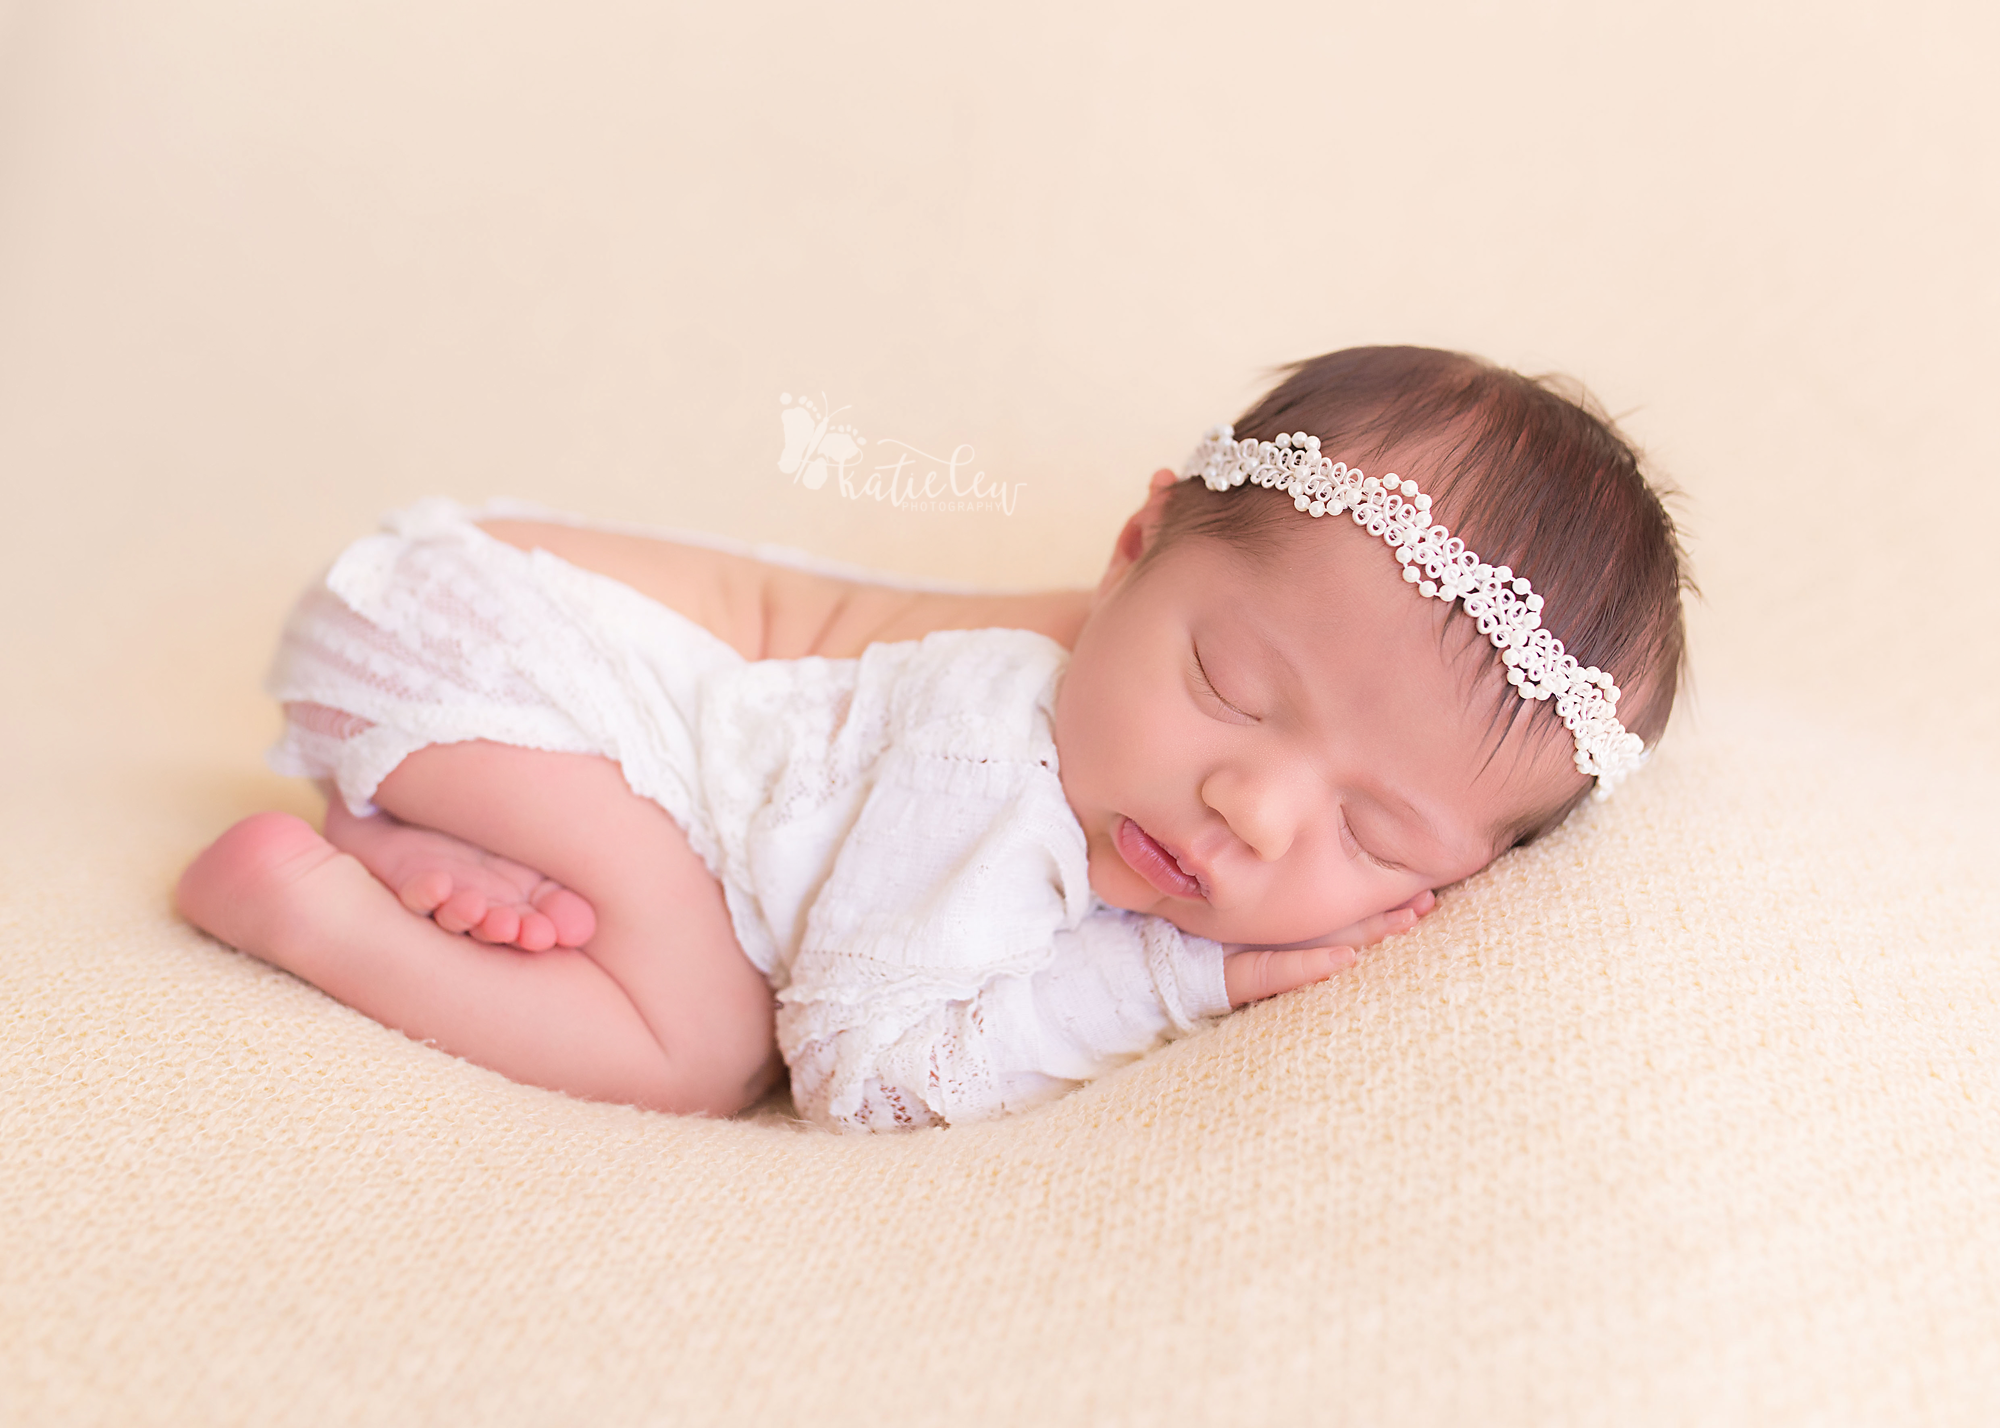 Newborn girl wearing white lace romper